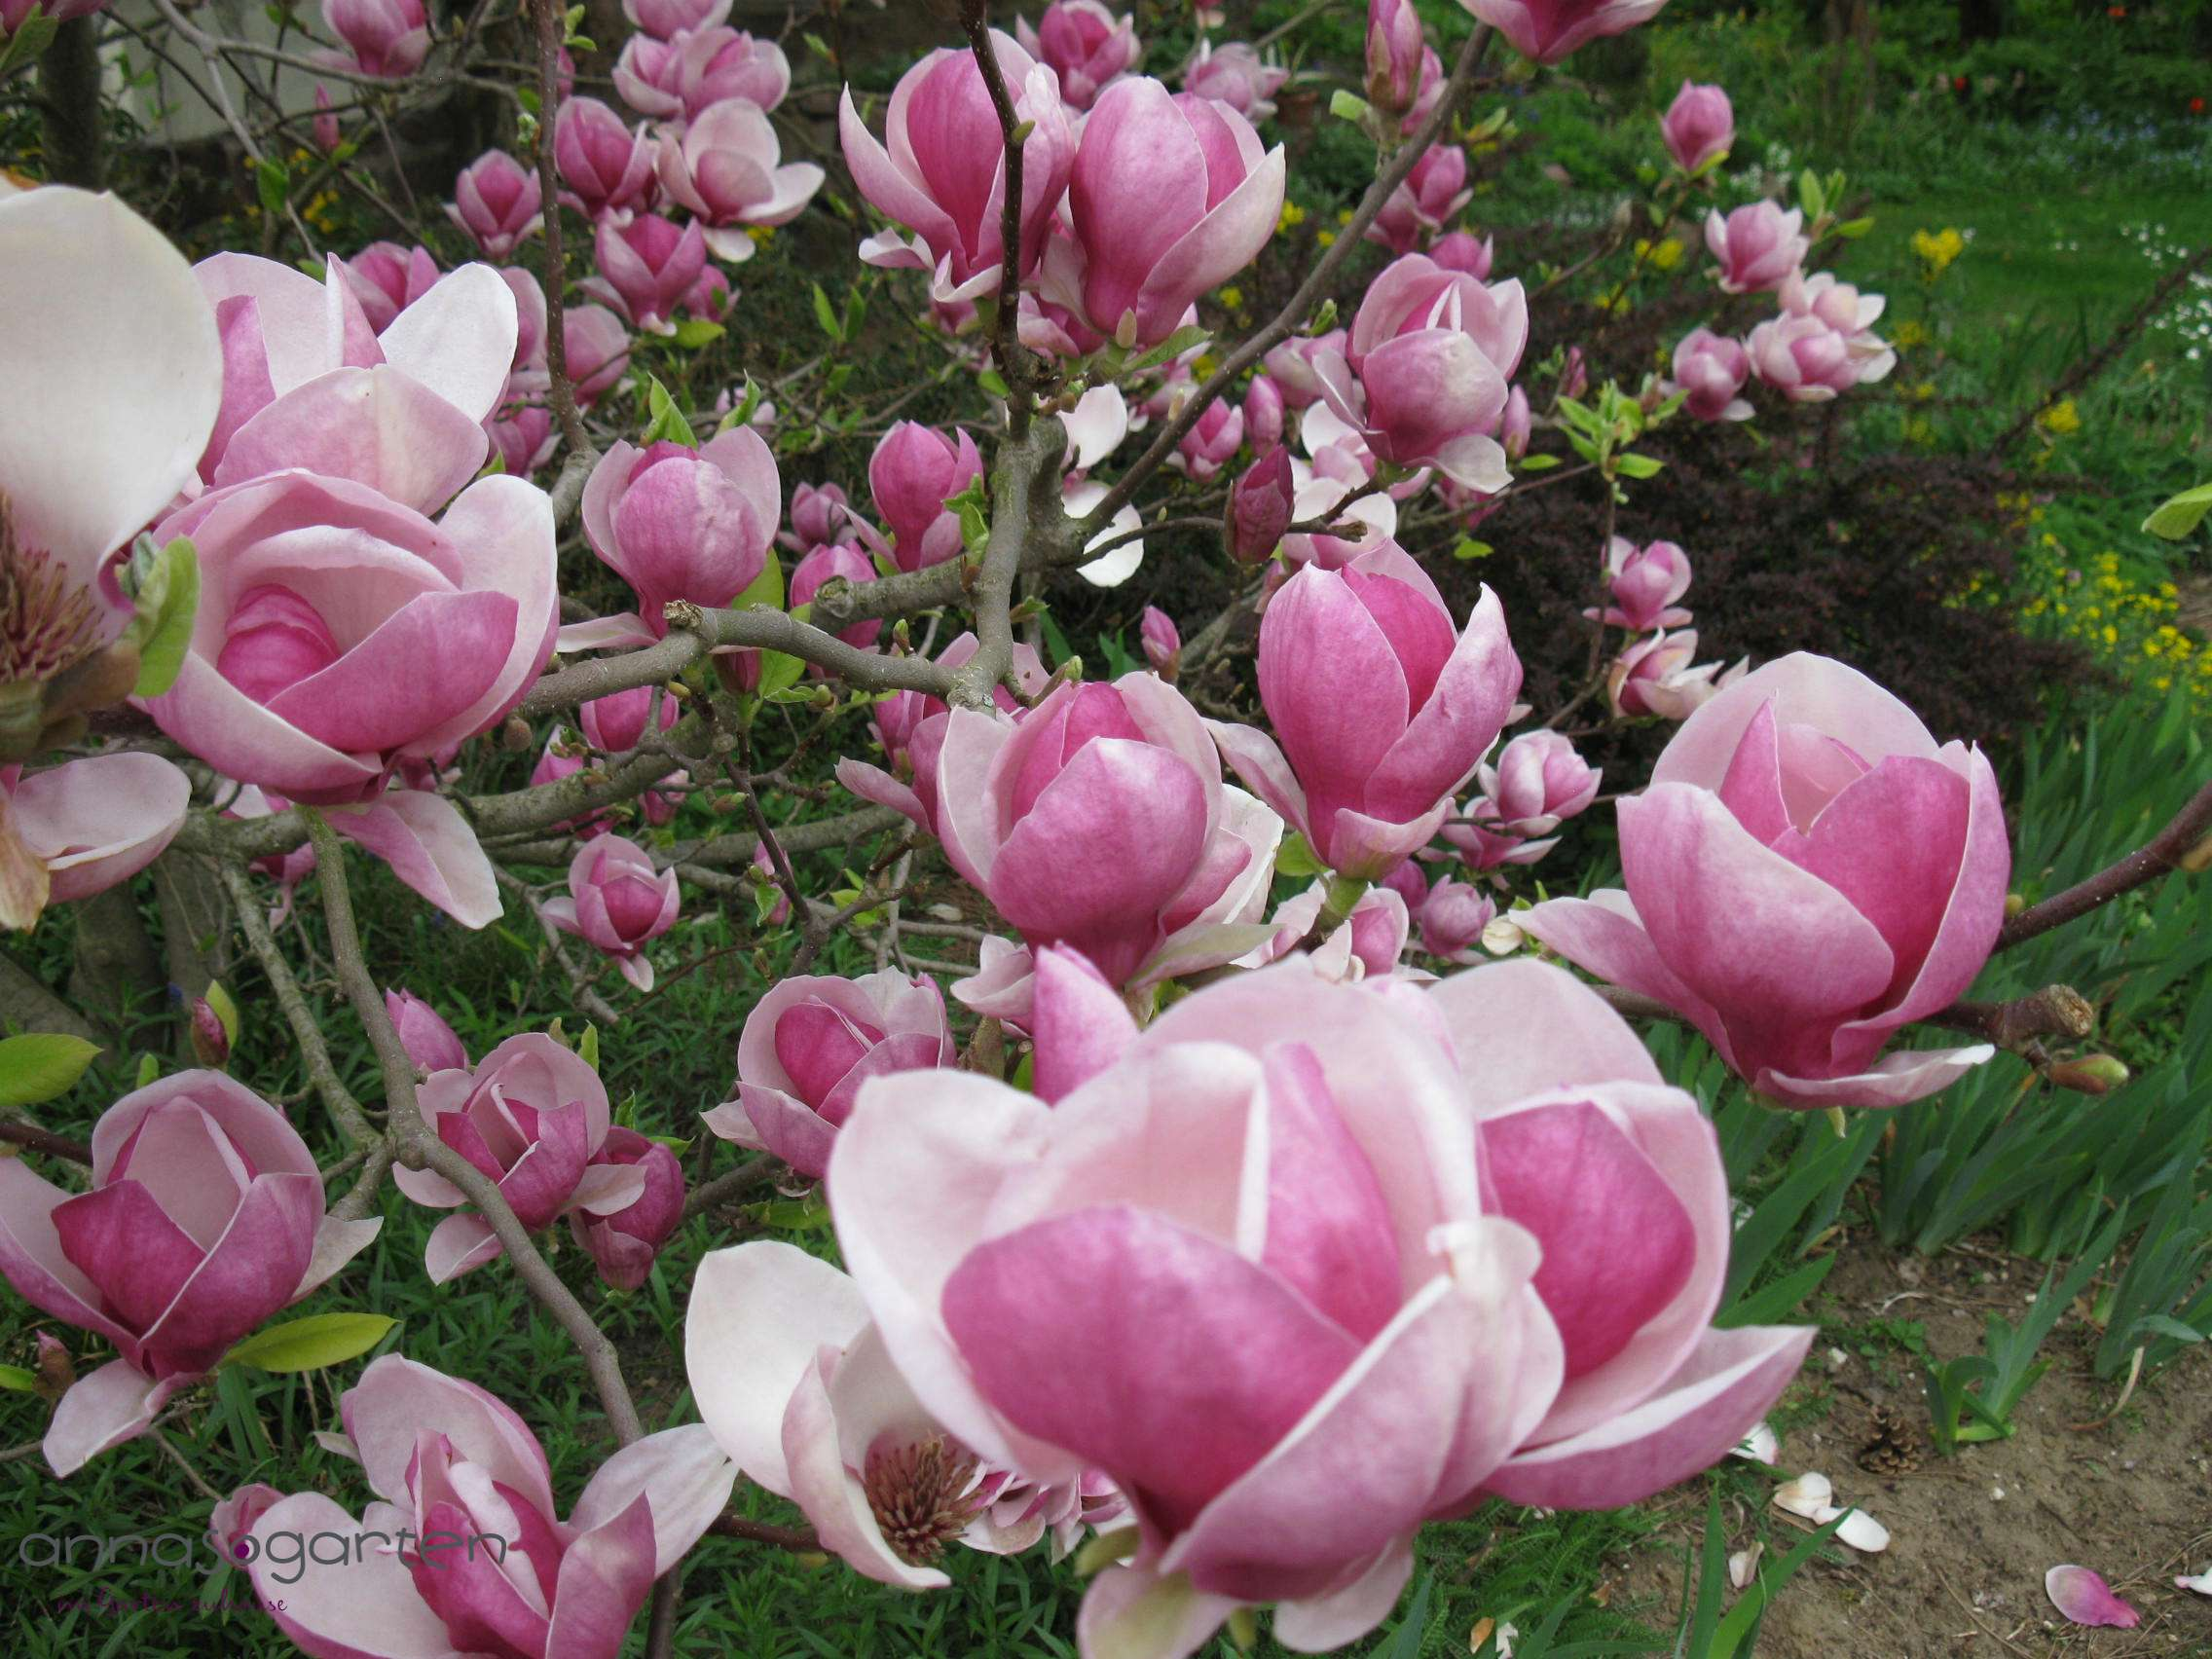 Tulpen Magnolie Pflege Magnolie Satisfaction Magnolia Satisfaction